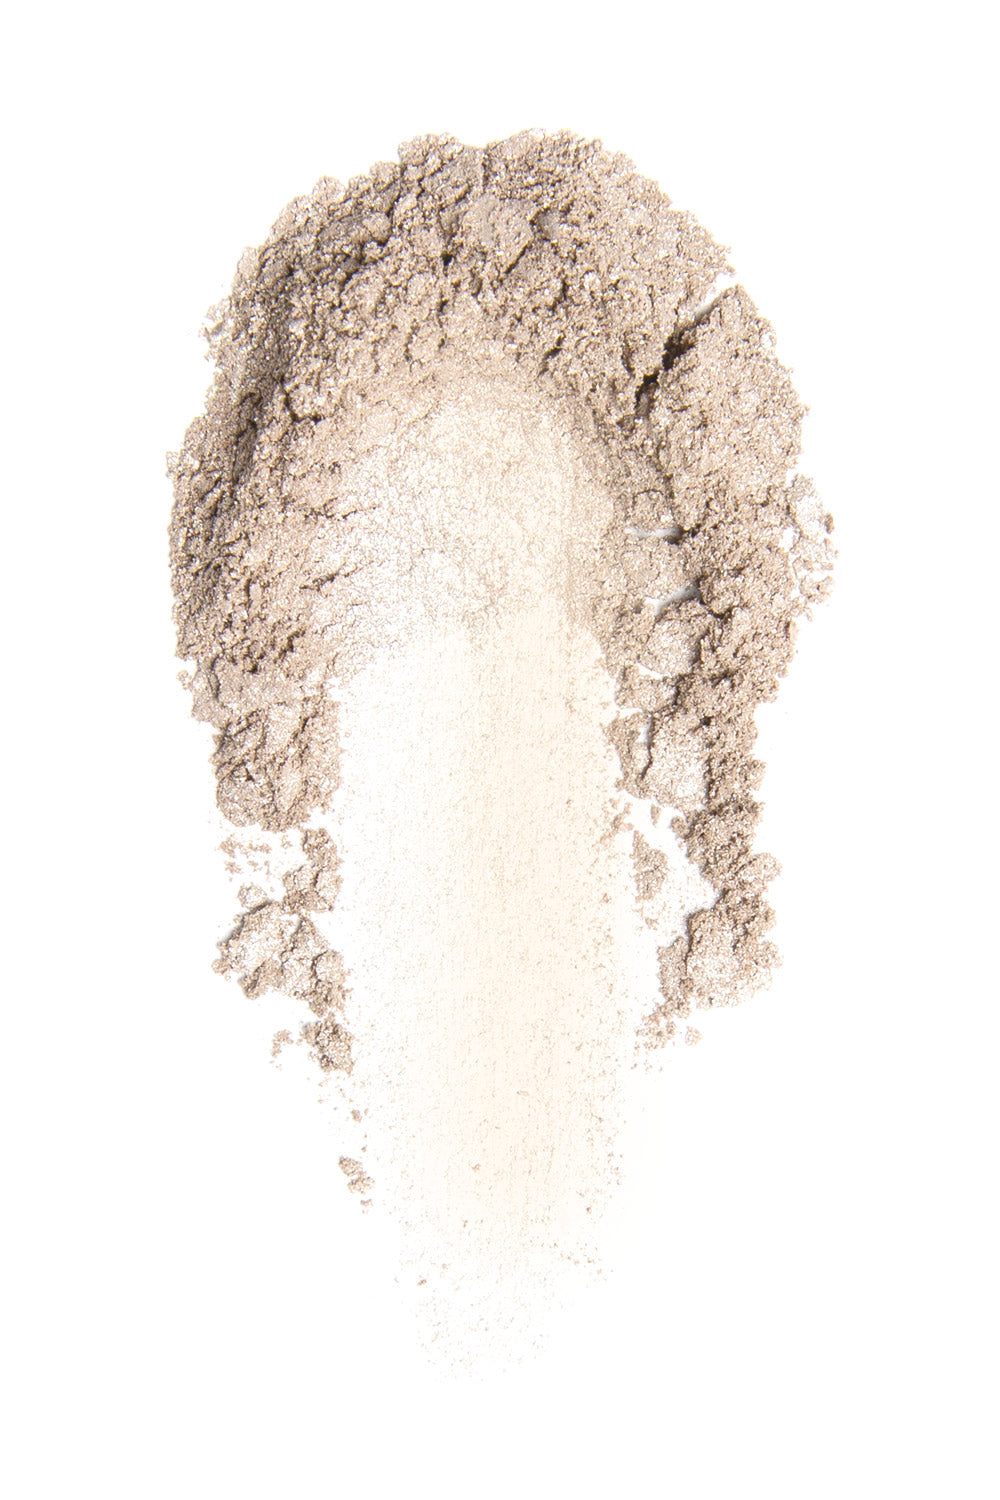 Warm Sand - Type 3 Eyeshadow pan